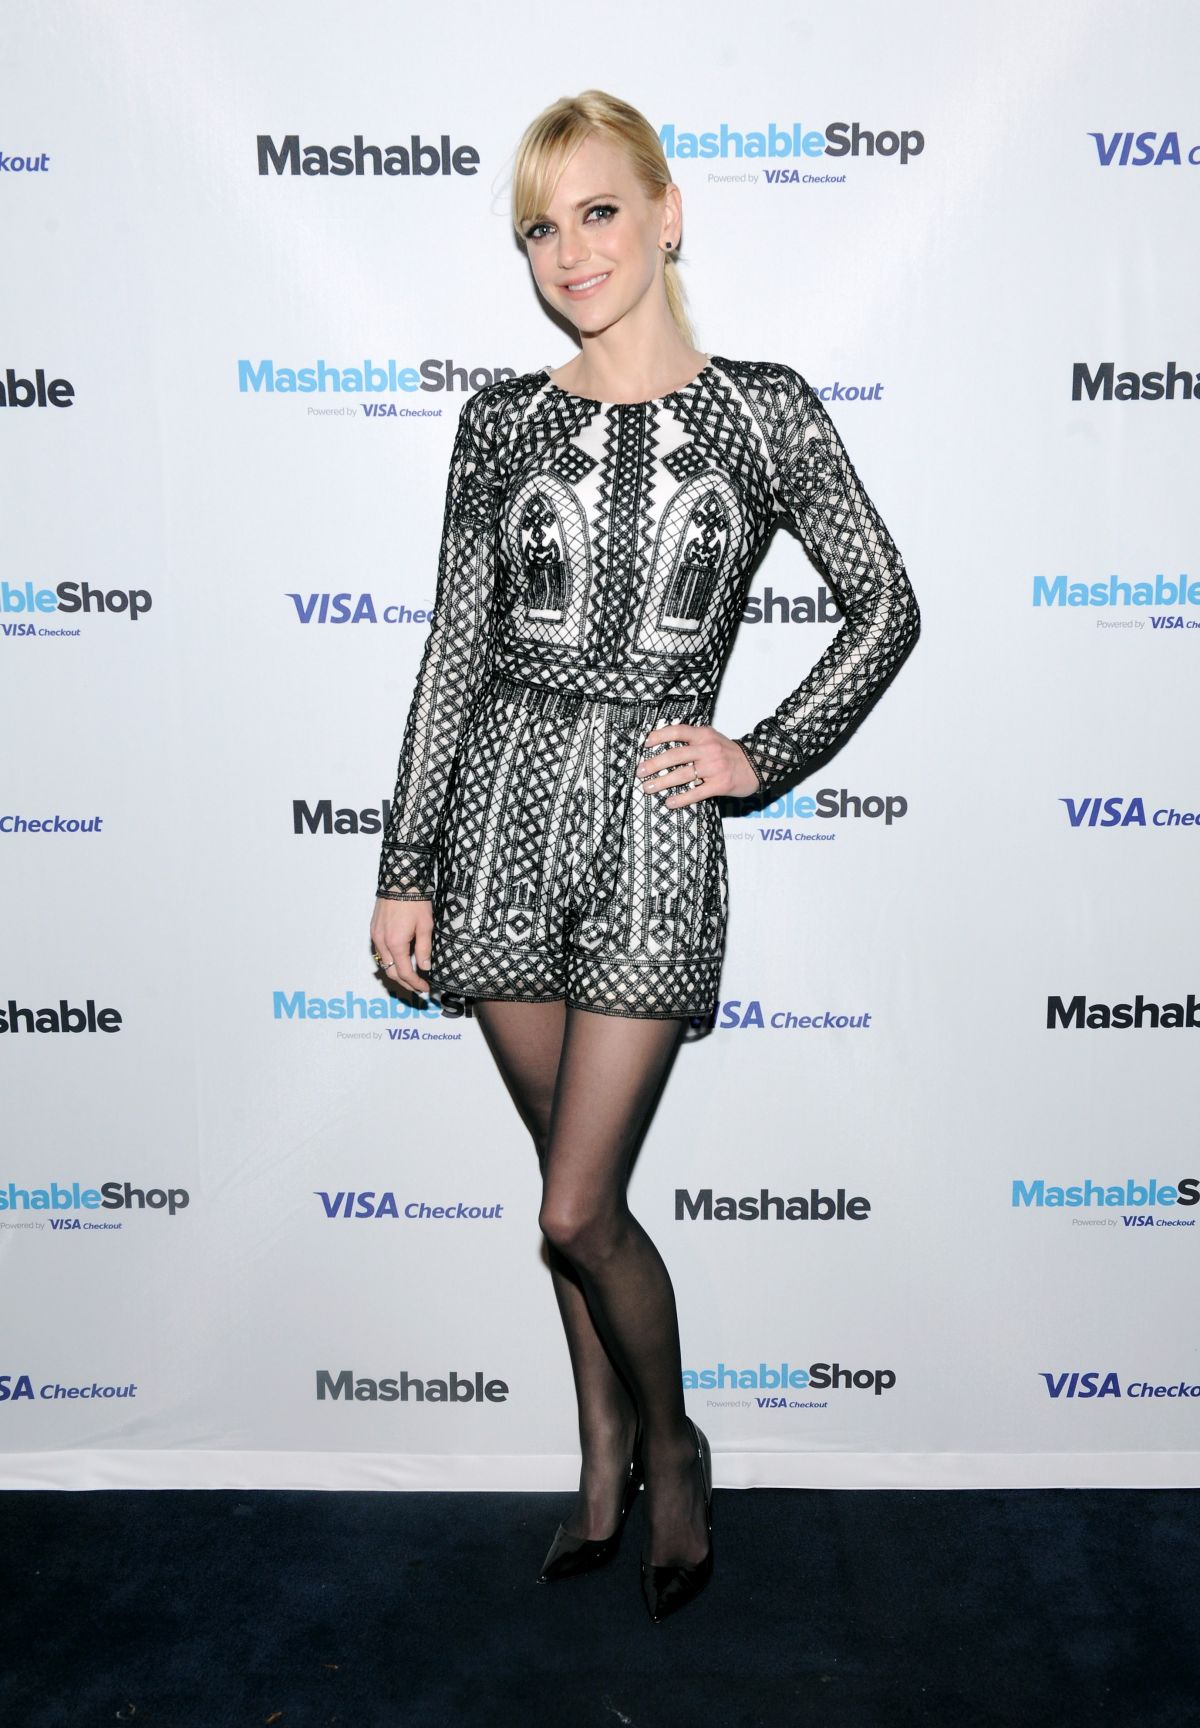 Anna faris at mashable shop launch event in new york 12 15 2015 3